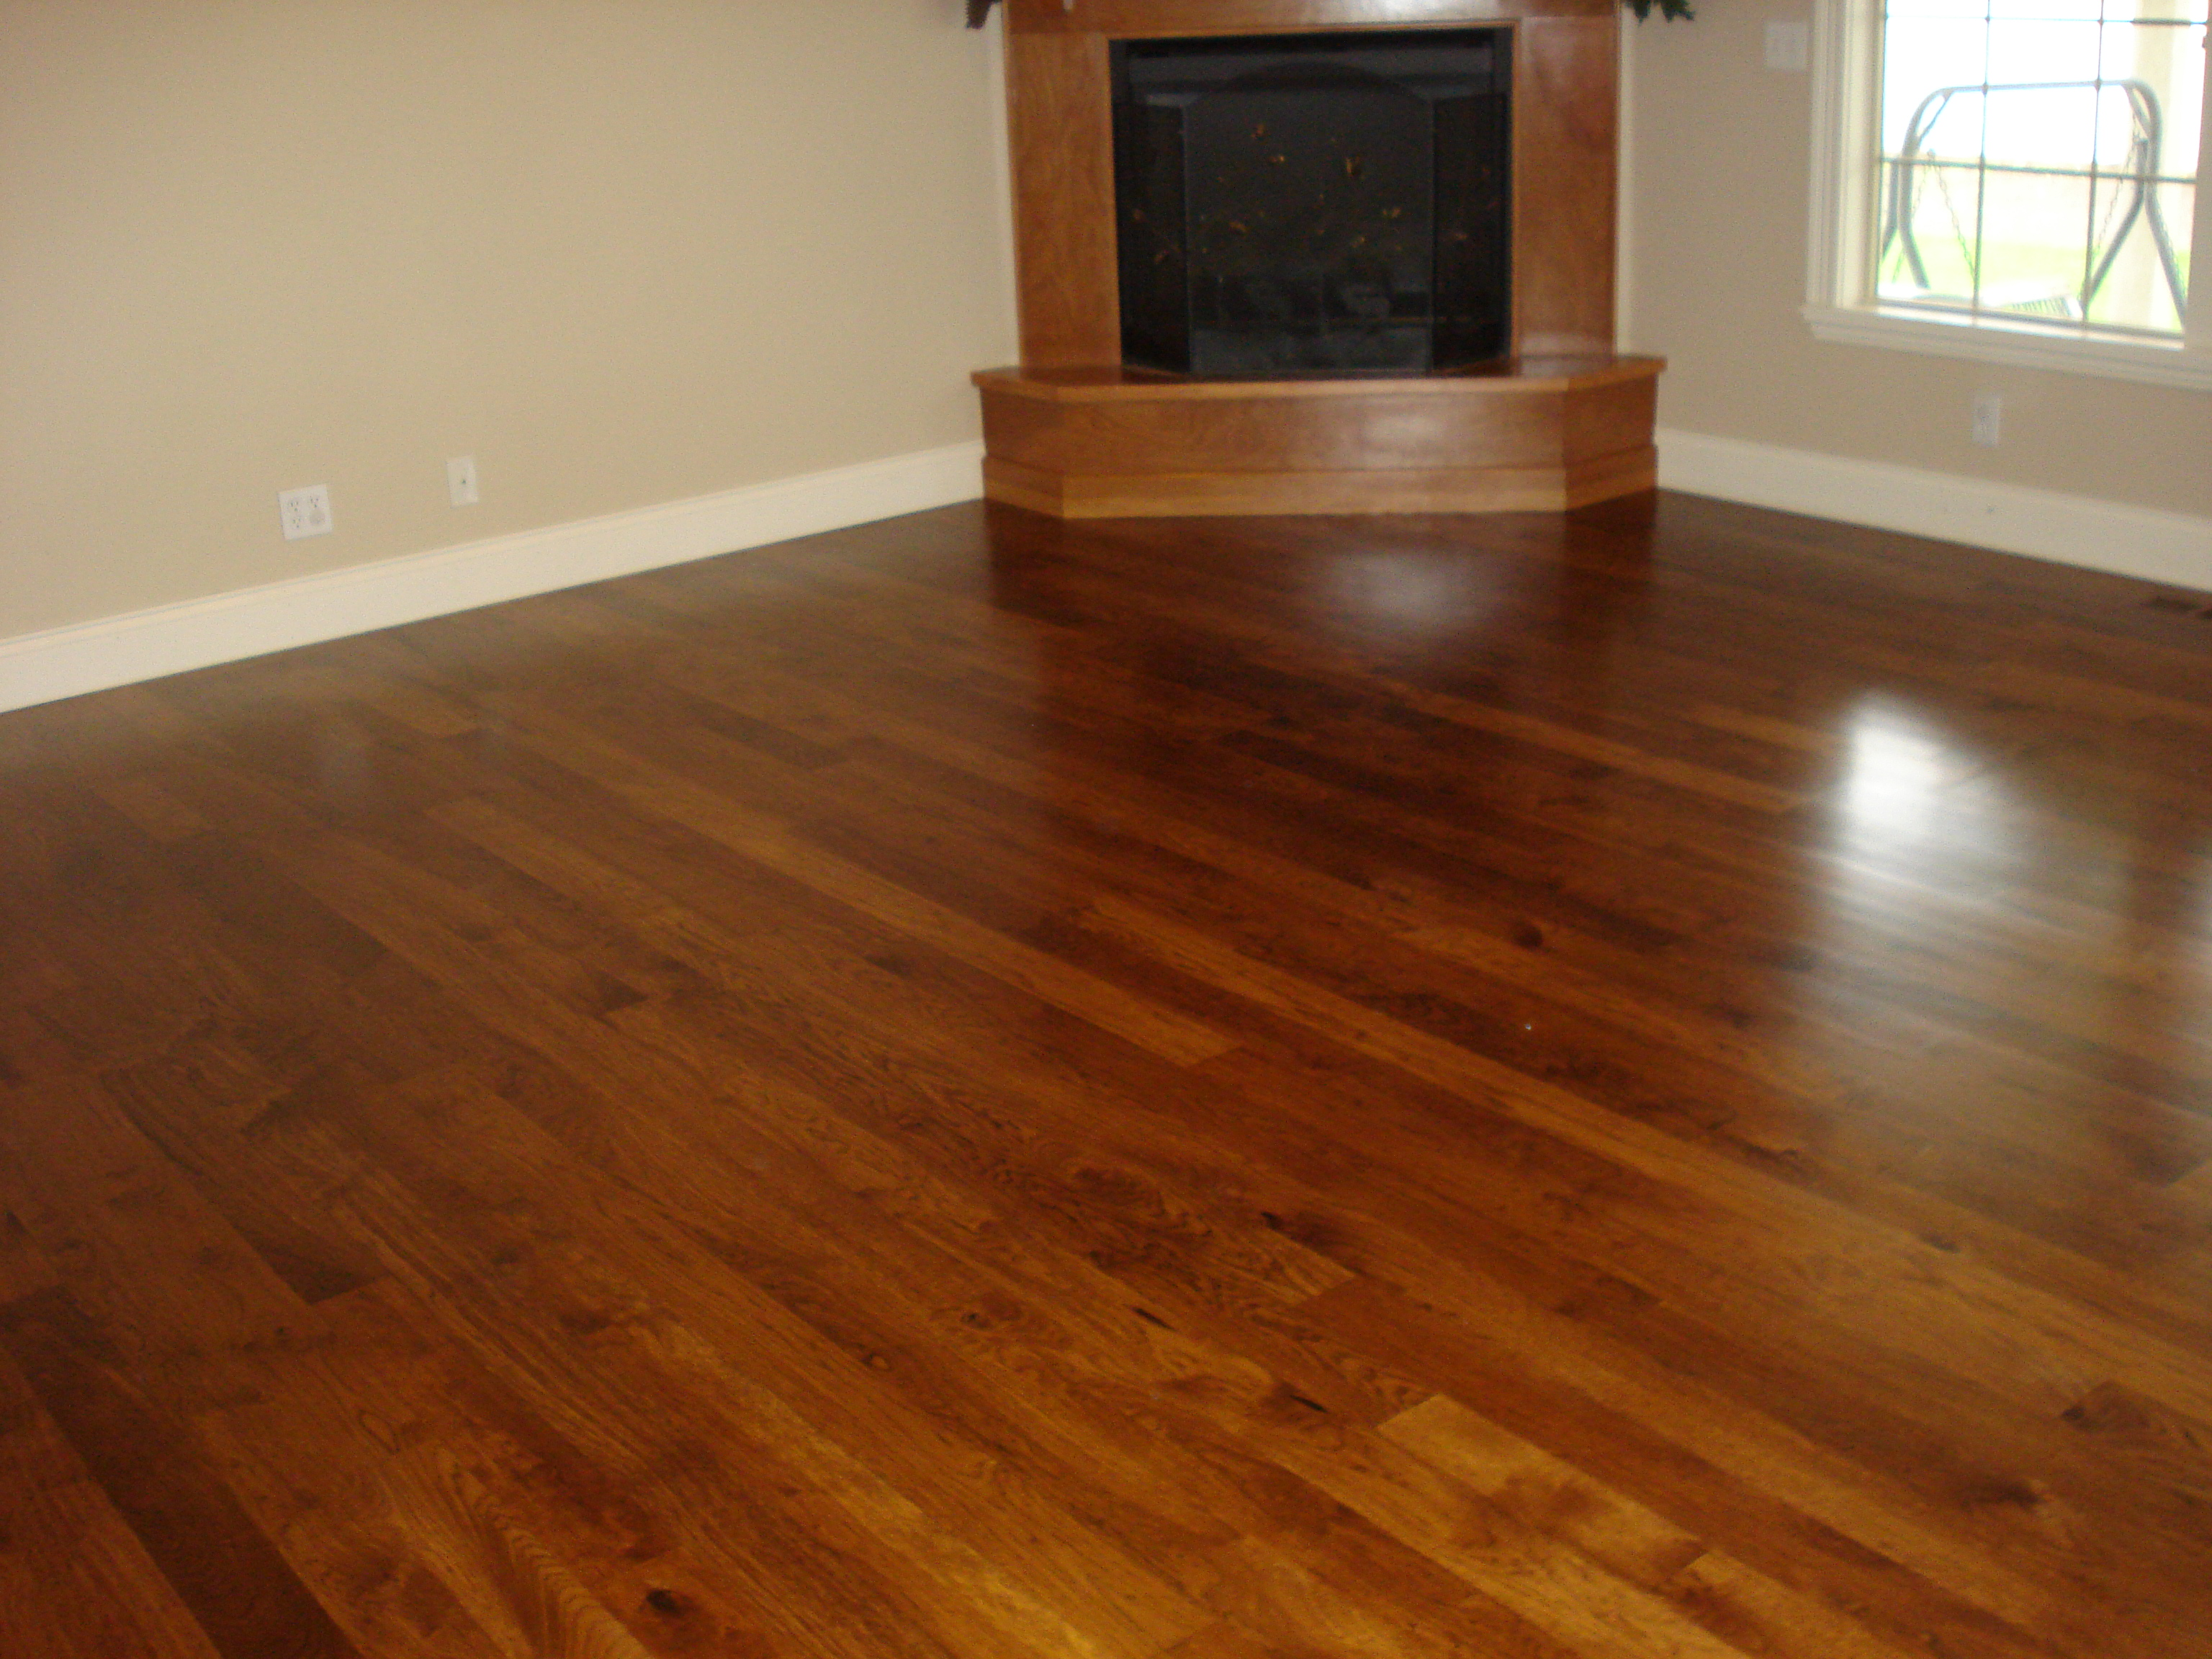 Floors laminate room ideas for Laminate flooring choices